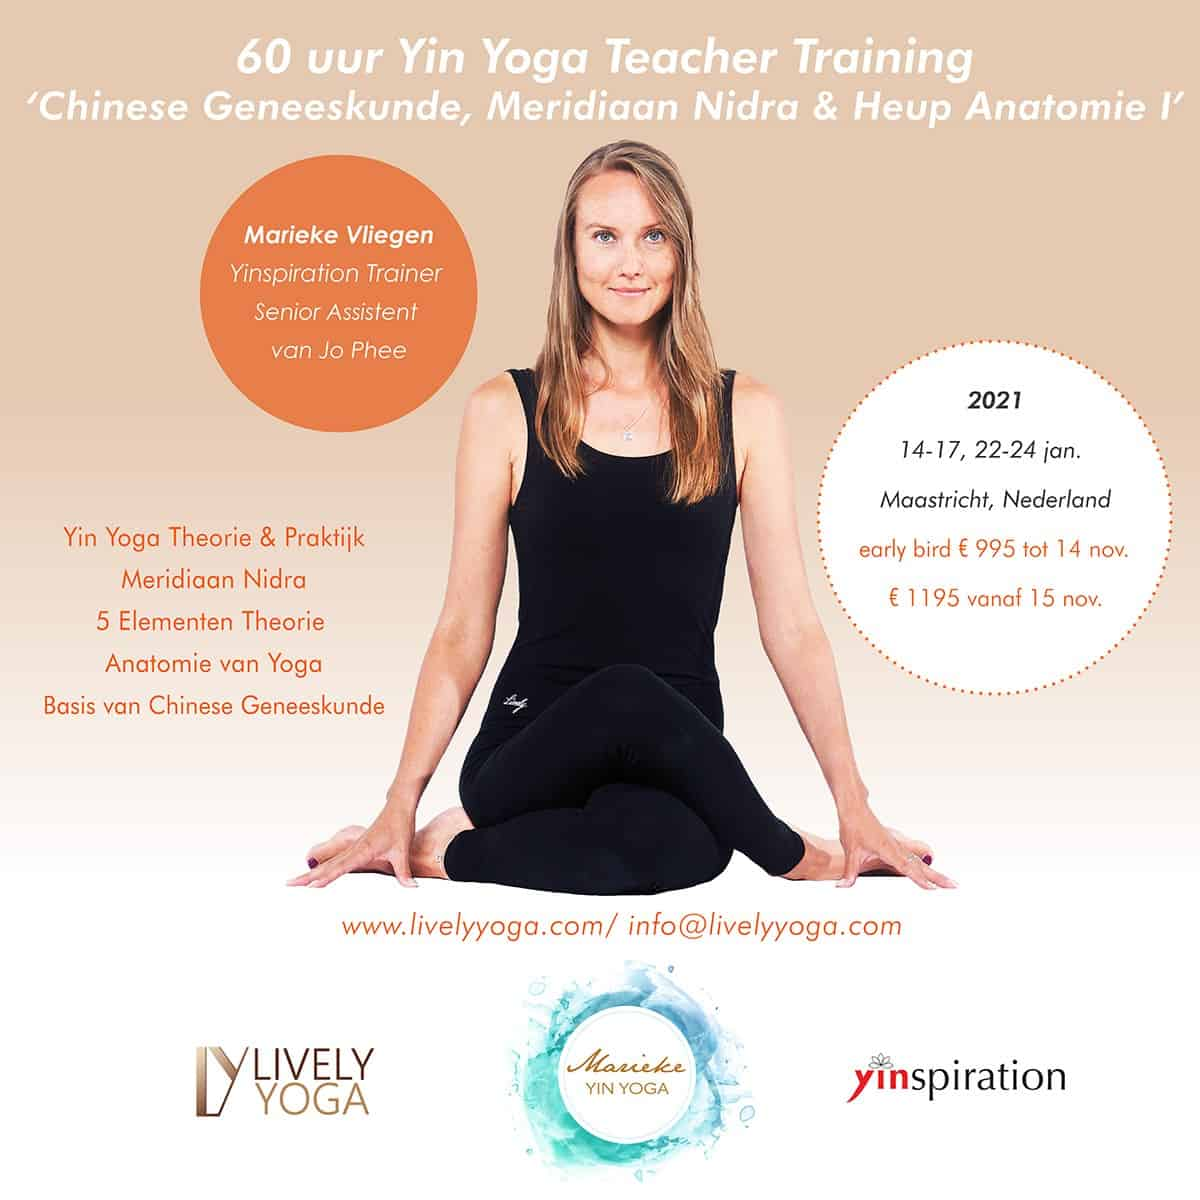 yin yoga en chinese geneeskunde teacher training 65 uur